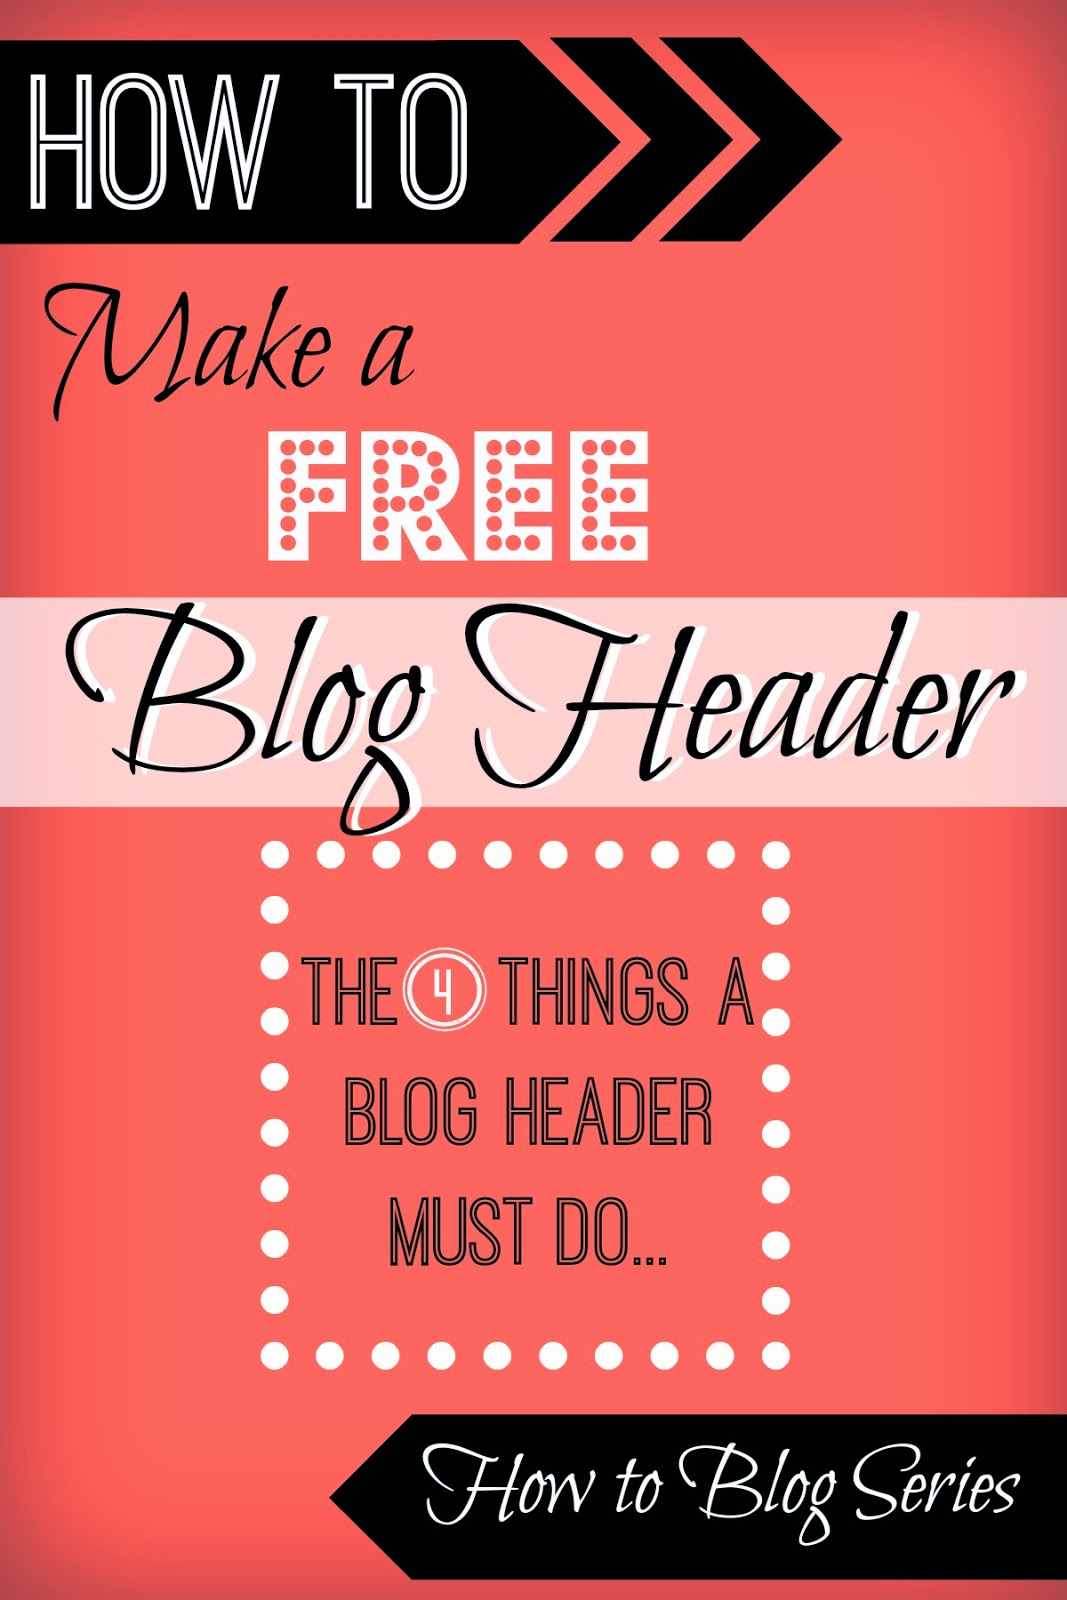 http://www.twoityourself.com/2014/04/how-to-blog-series-making-free-blog.html